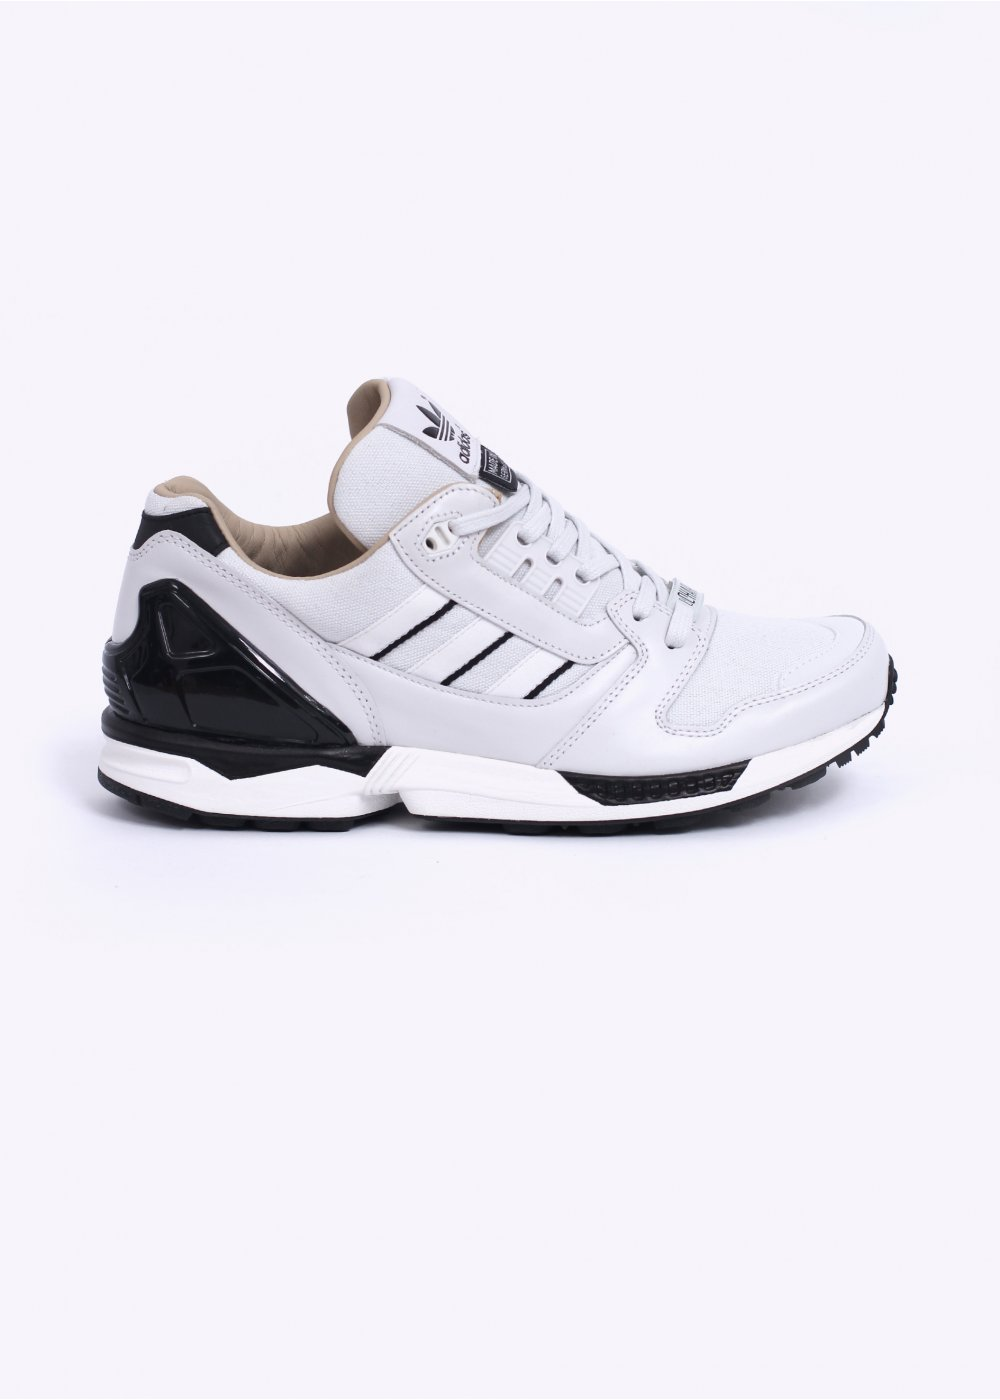 sports shoes d3643 b69d9 adidas Originals Footwear Fall of the Wall - Charlie' ZX 8000 Trainers -  Neo White / Blac